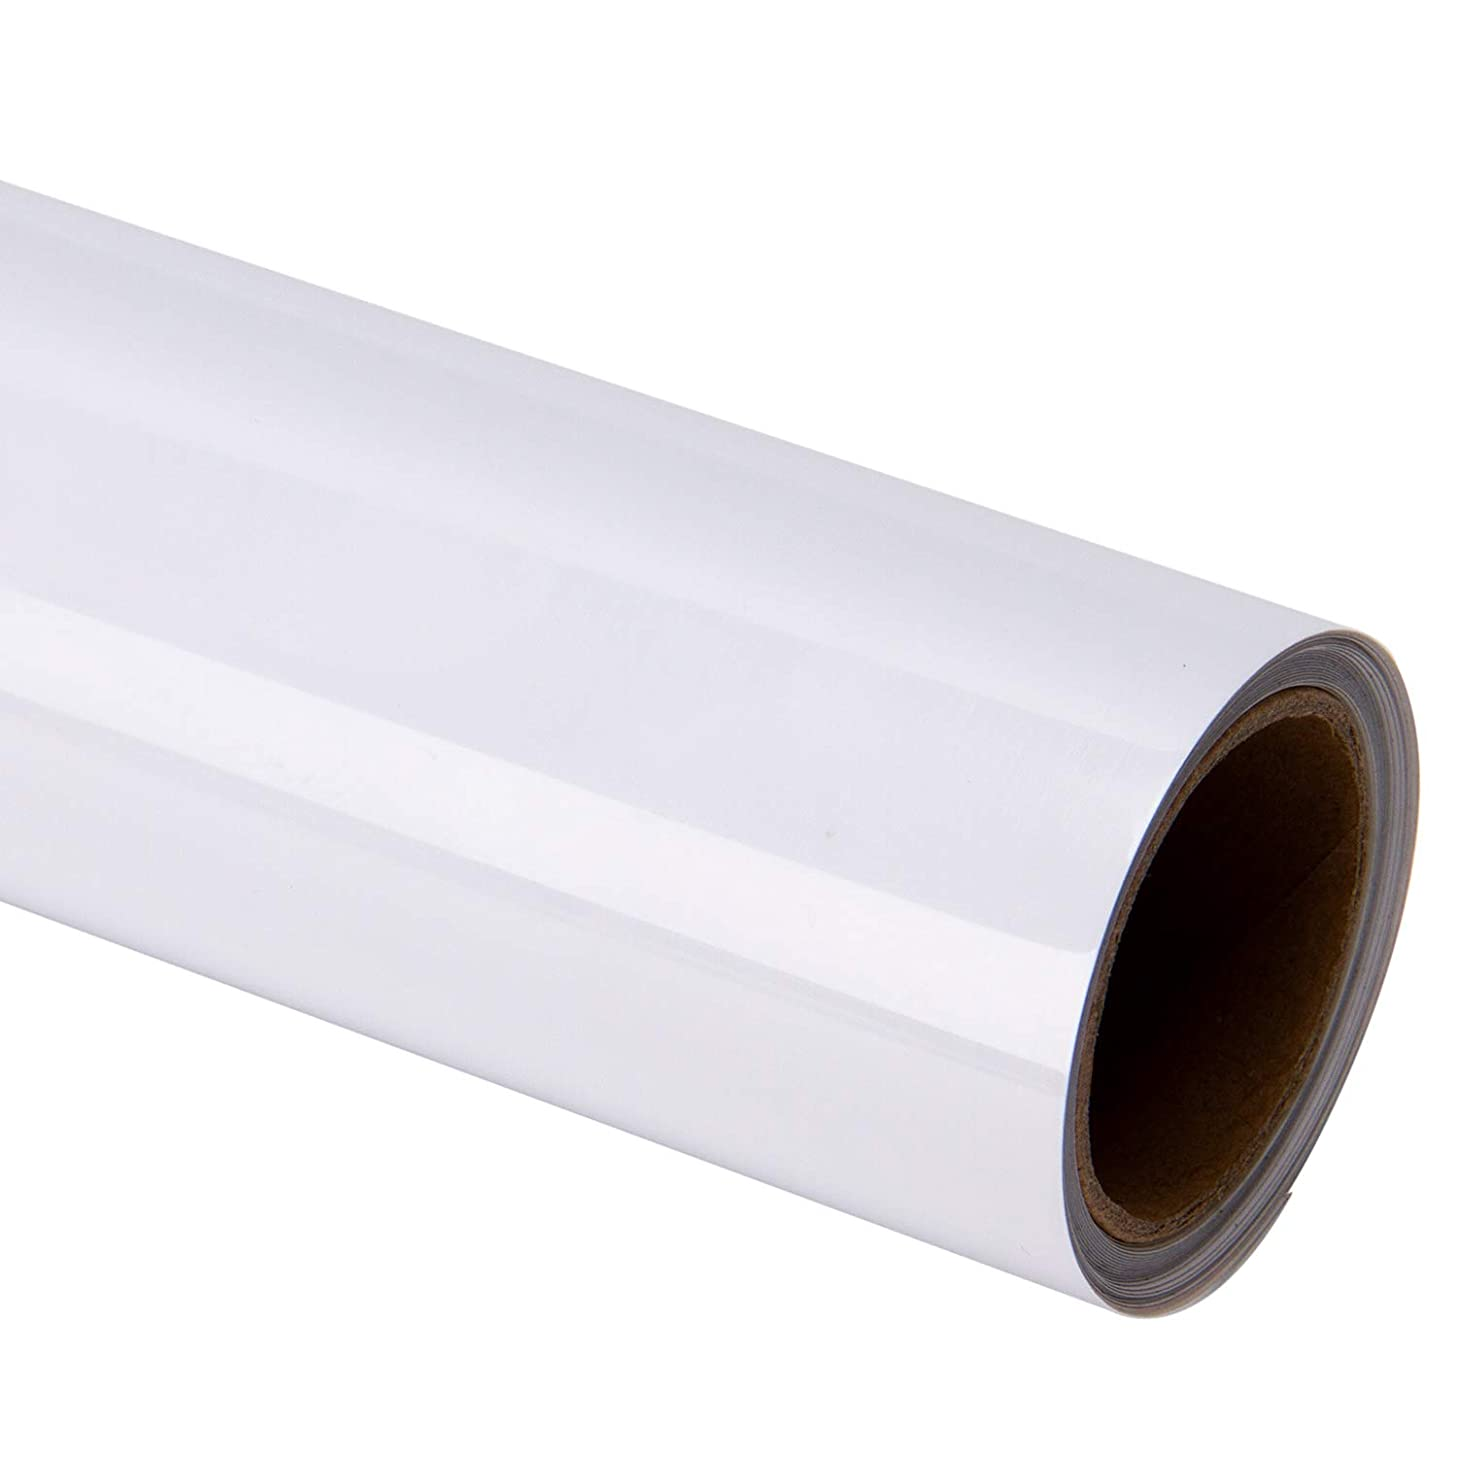 MAYPLUSS Heat Transfer Vinyl Roll - Easy to Weed Iron on HTV for T-Shirts, Craft Garment Heat Press - 15 Inches by 6 Feet Roll - White